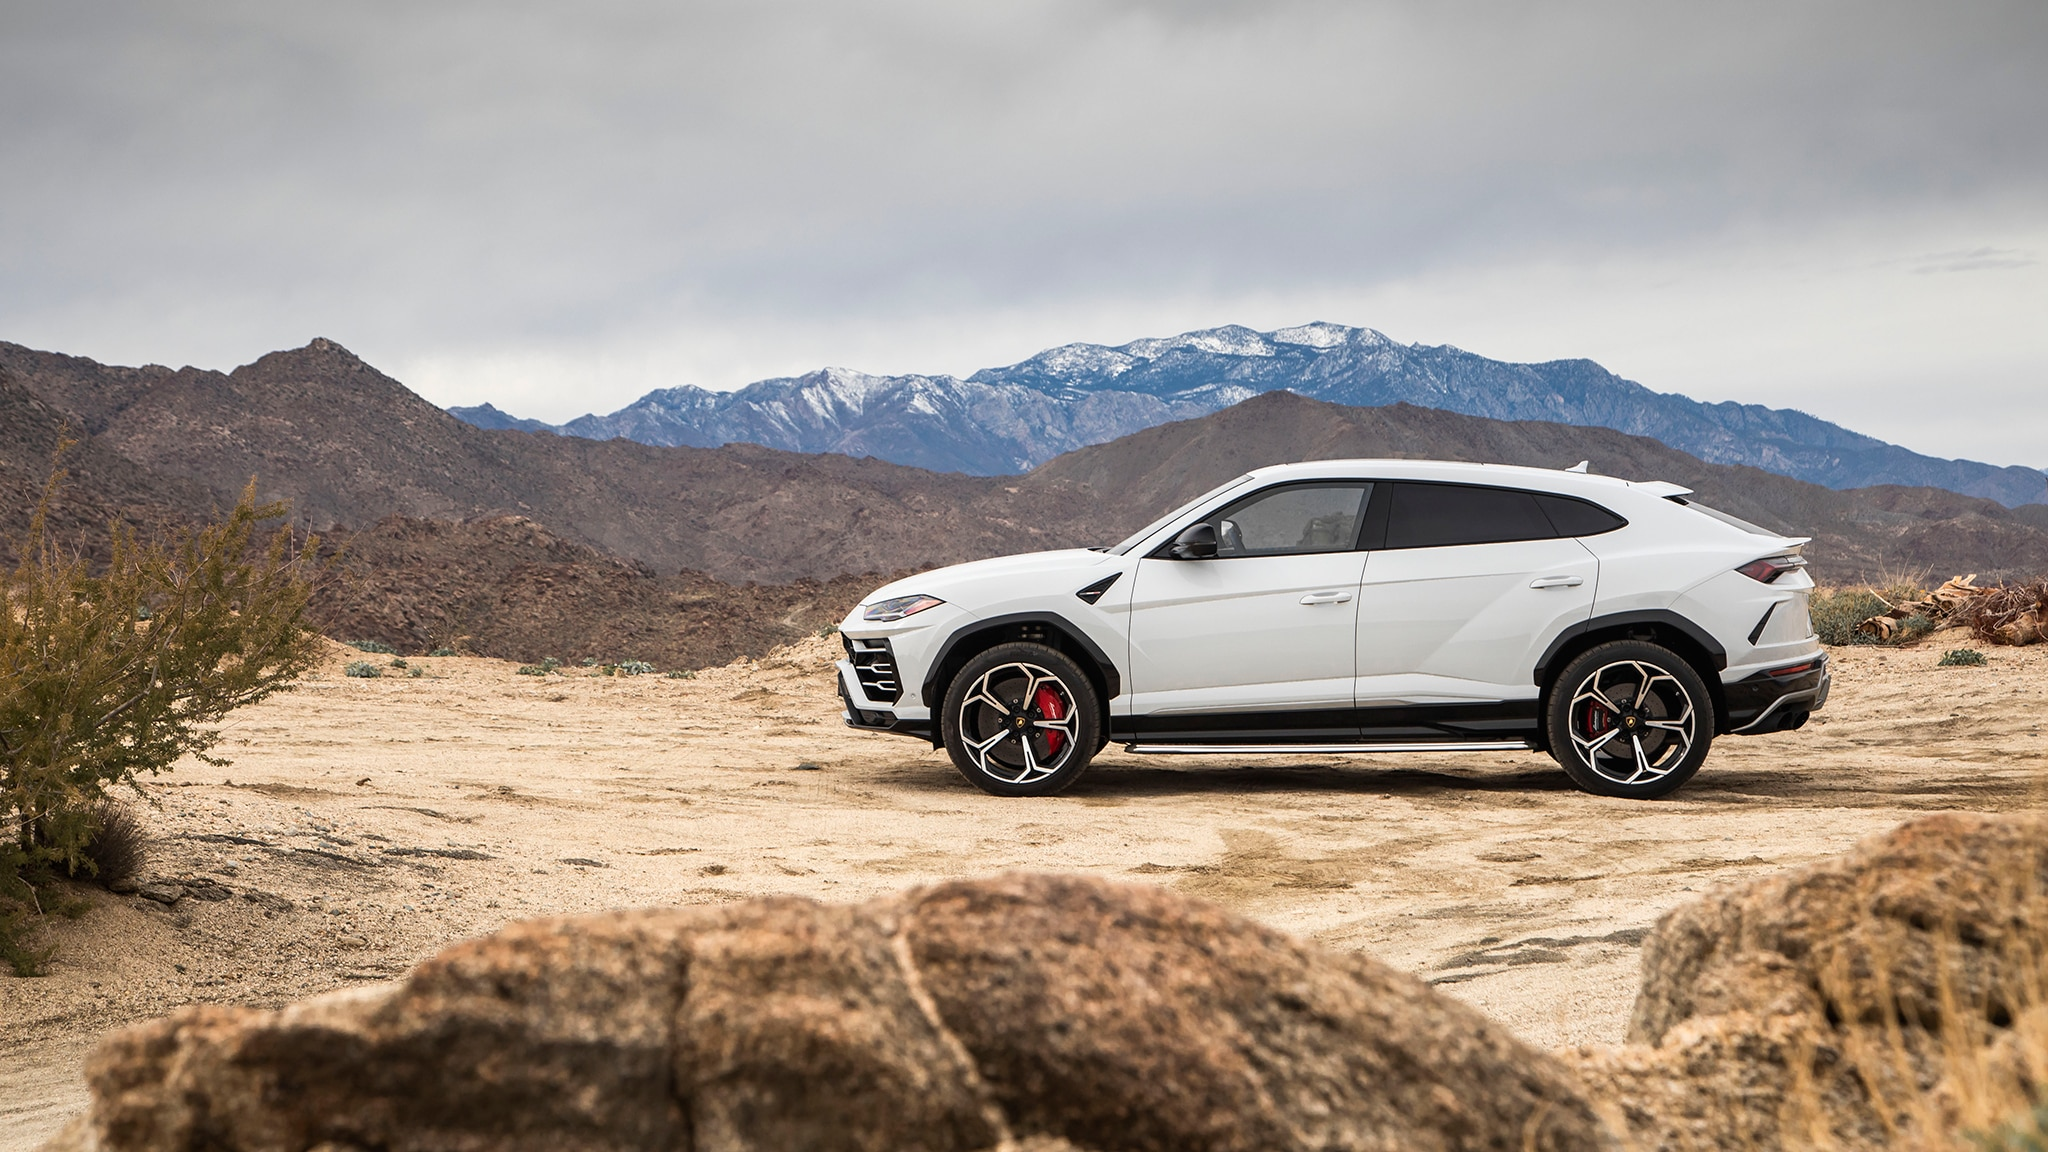 2019 Lamborghini Urus Review: Nothing Like It. For Now ...